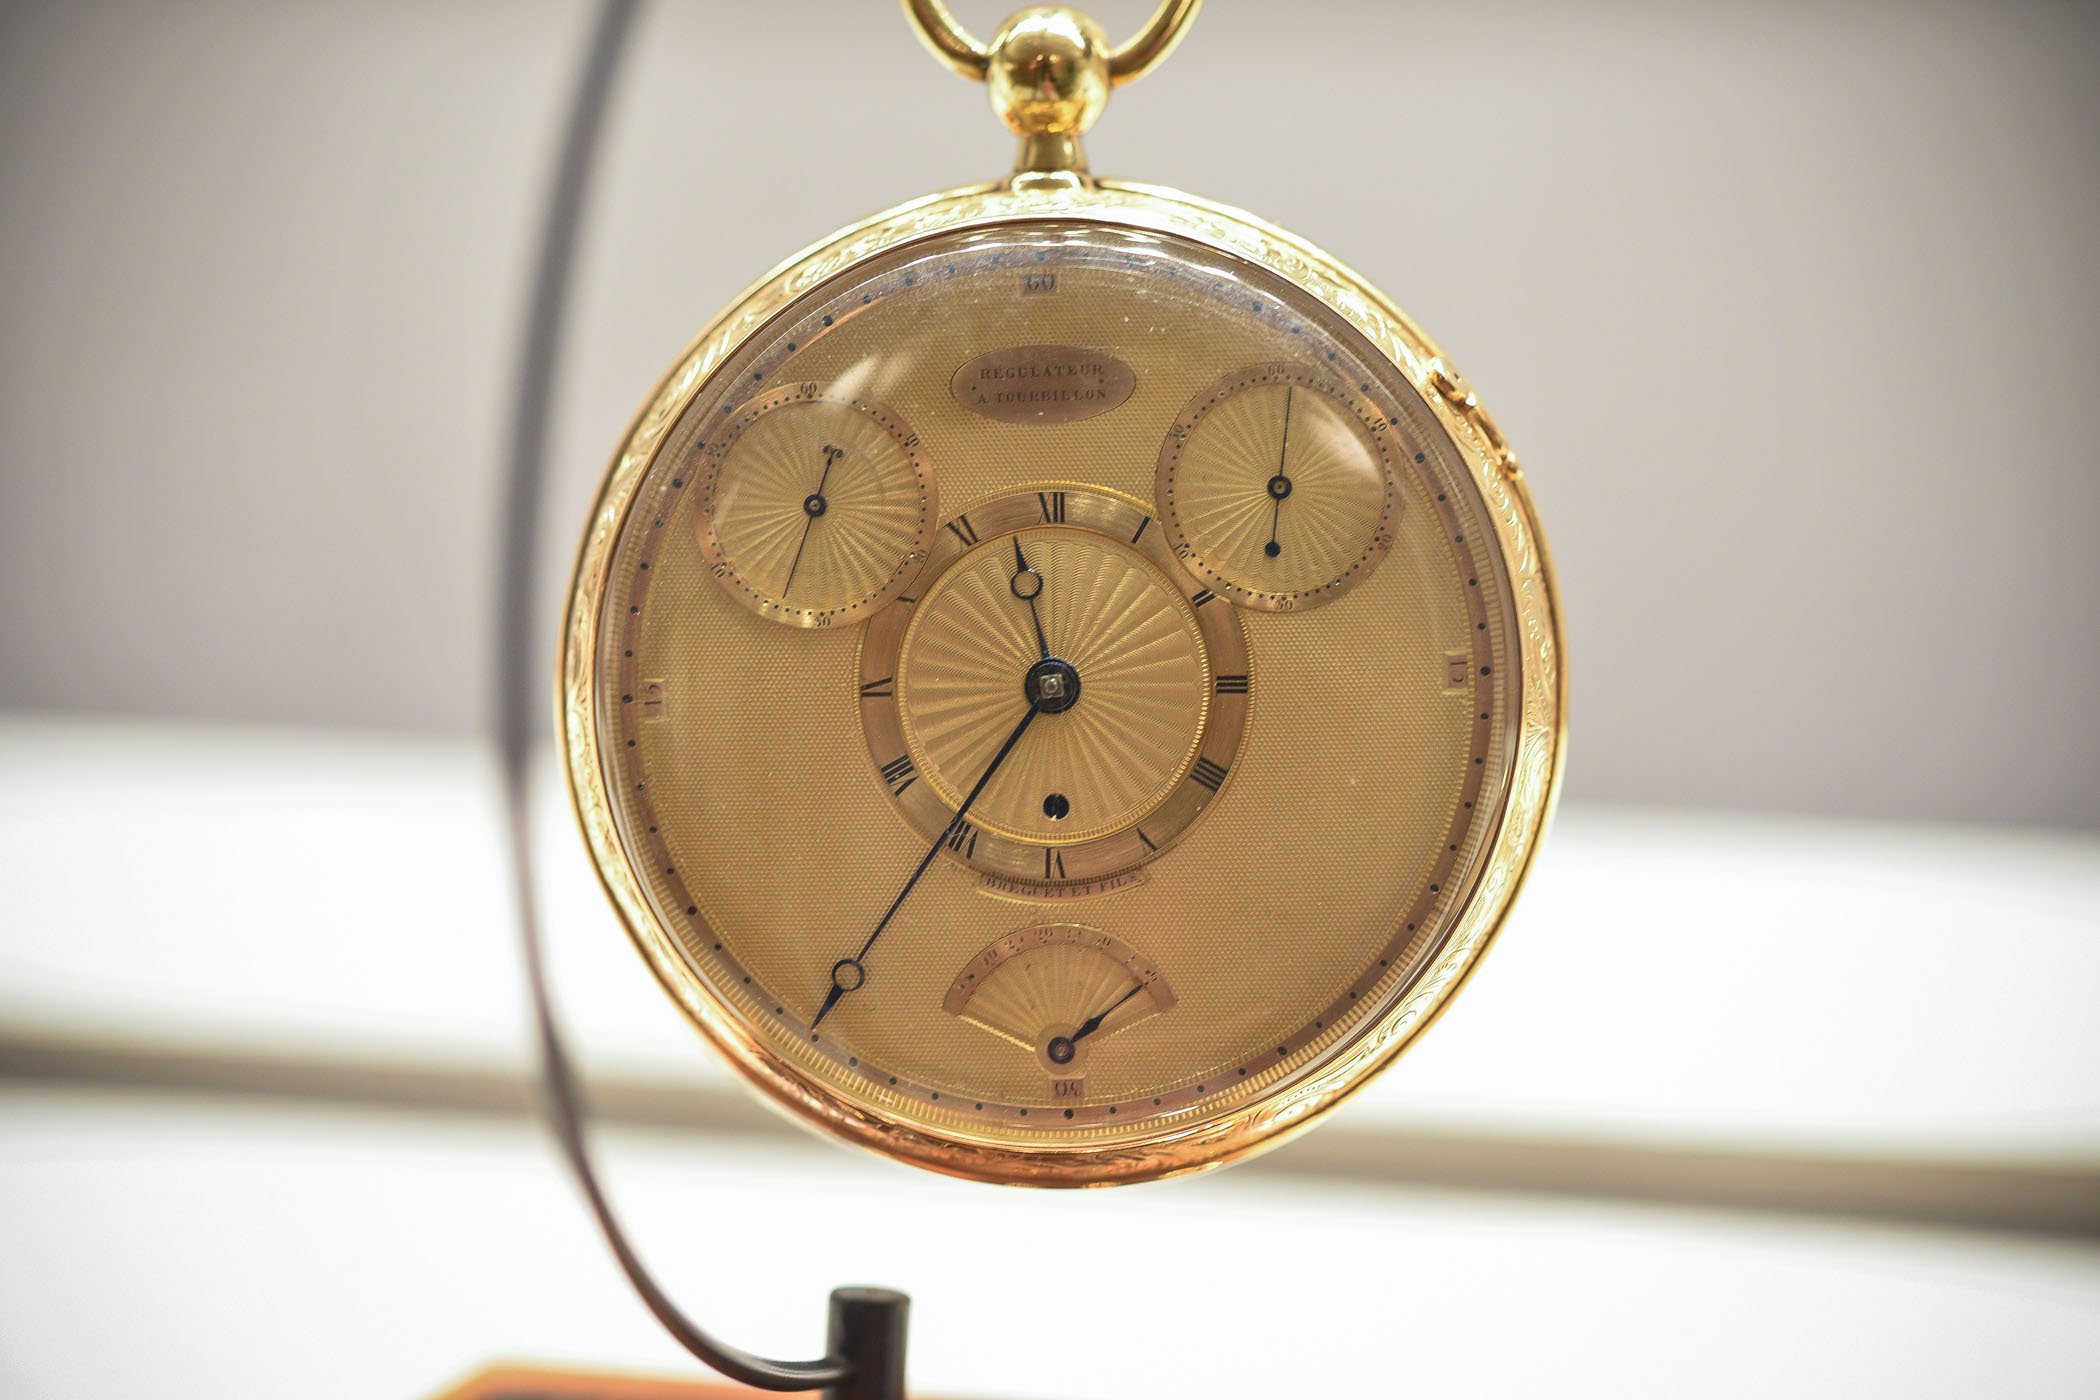 Breguet Tourbillon pocket watch No 1176